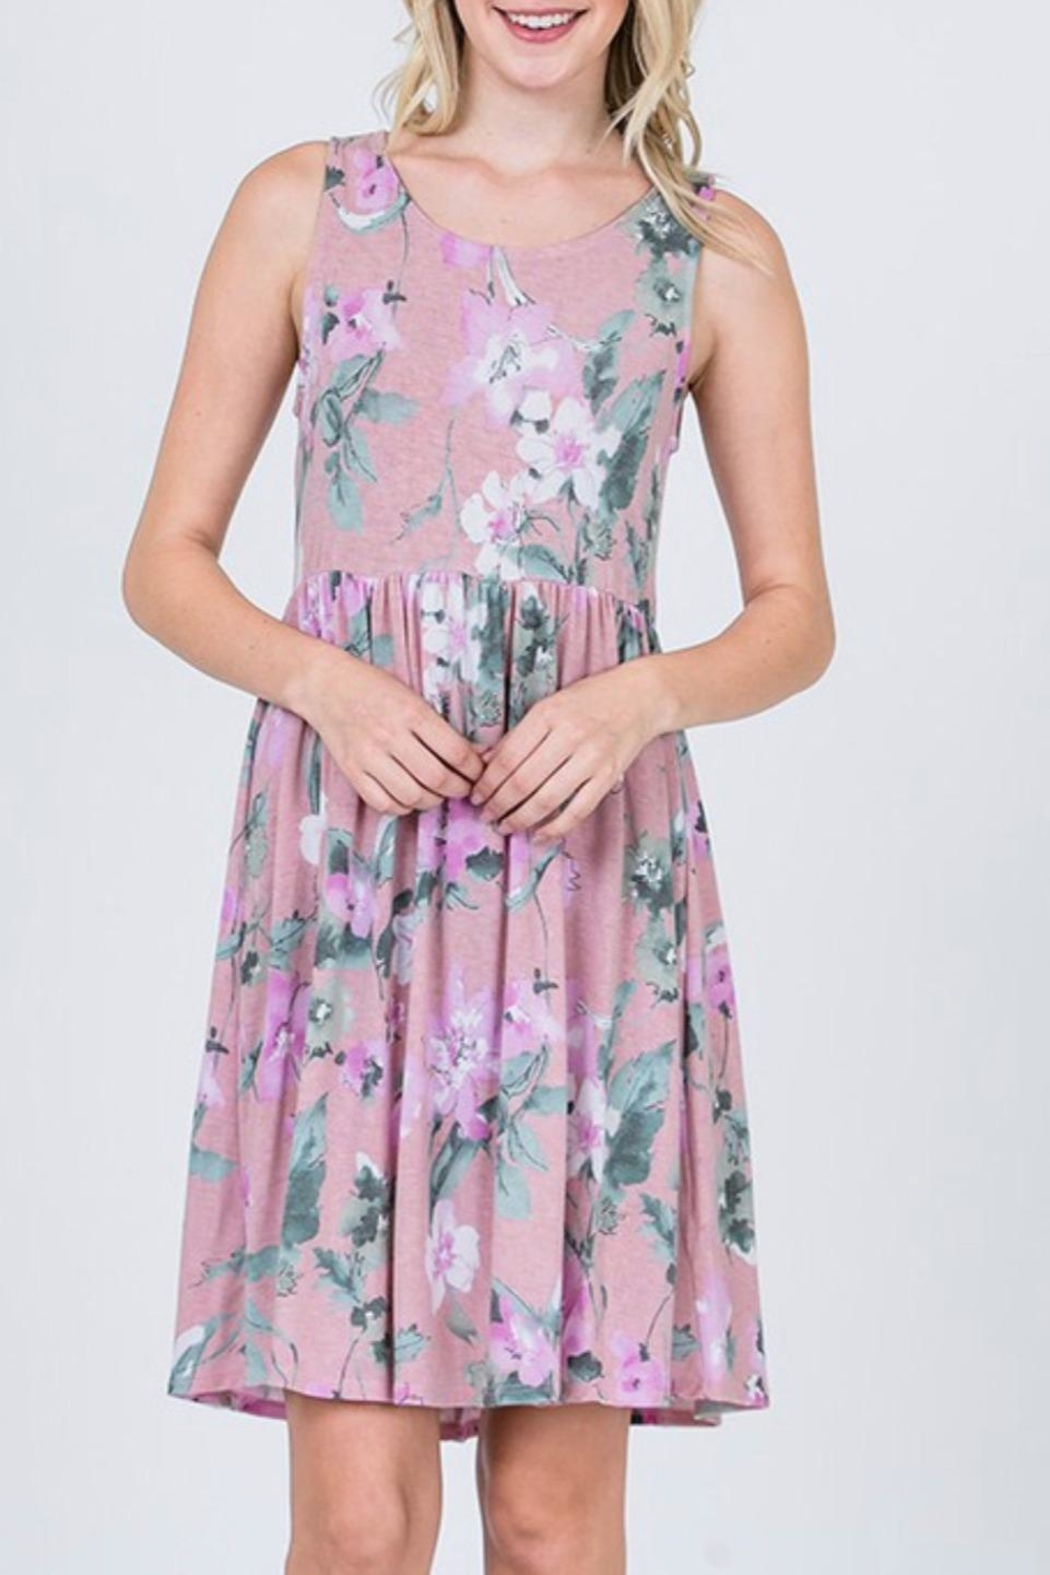 CY Fashion Lavender Floral Dress - Front Full Image